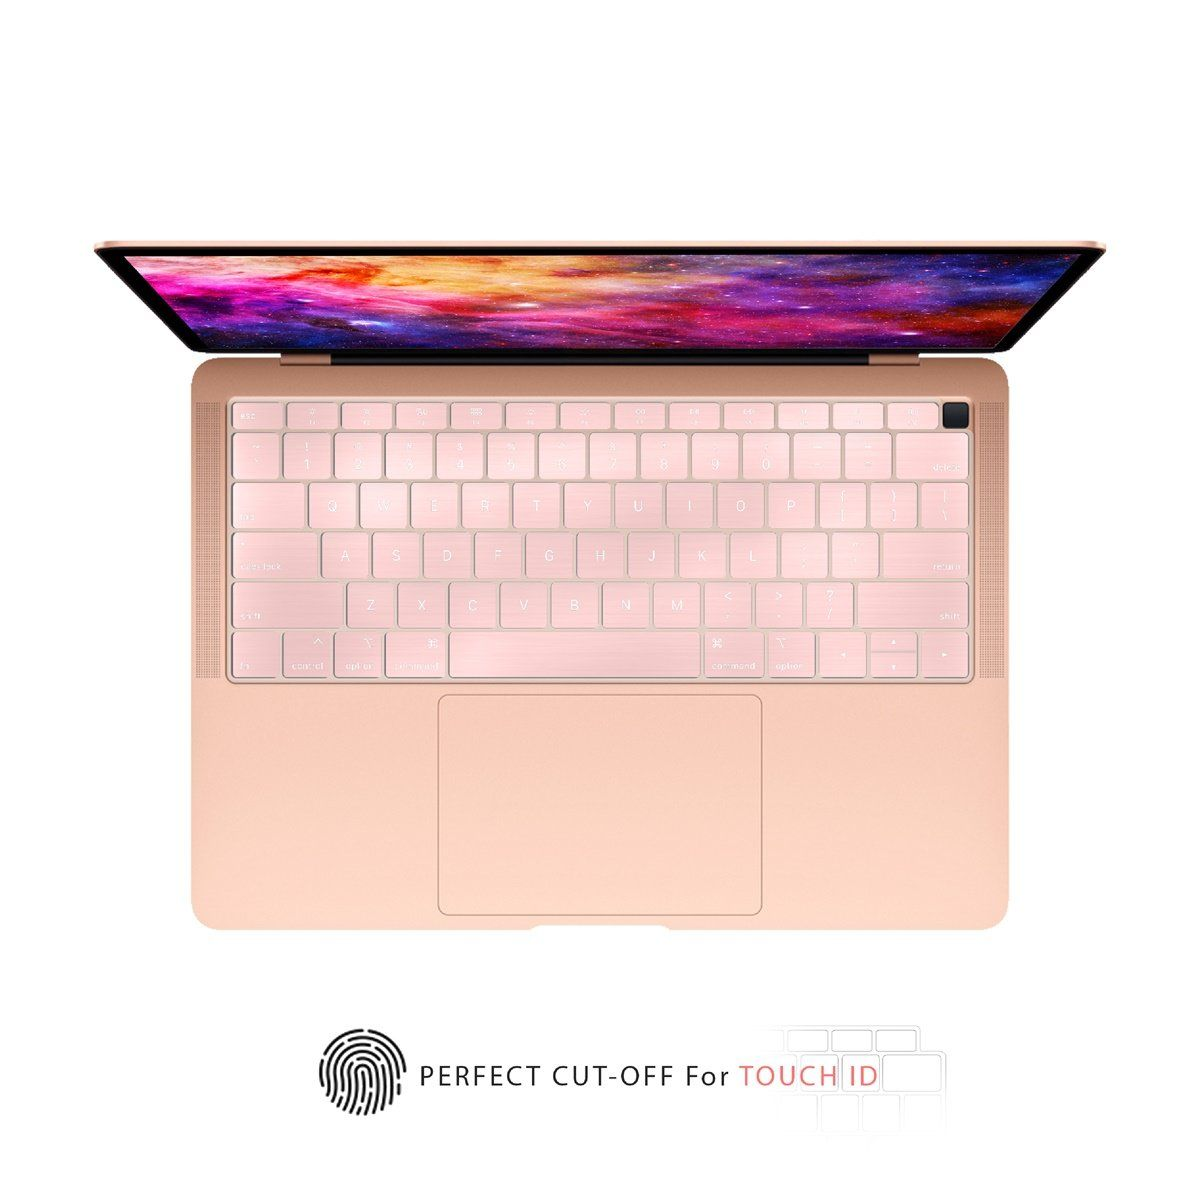 Top Case Ultra Thin Silicone Keyboard Cover Skin Compatible With 2018 Release Macbook Air 13 Inch With Retina Display Fits Touch Id Model A1932 Rose Gold Macbook Air 13